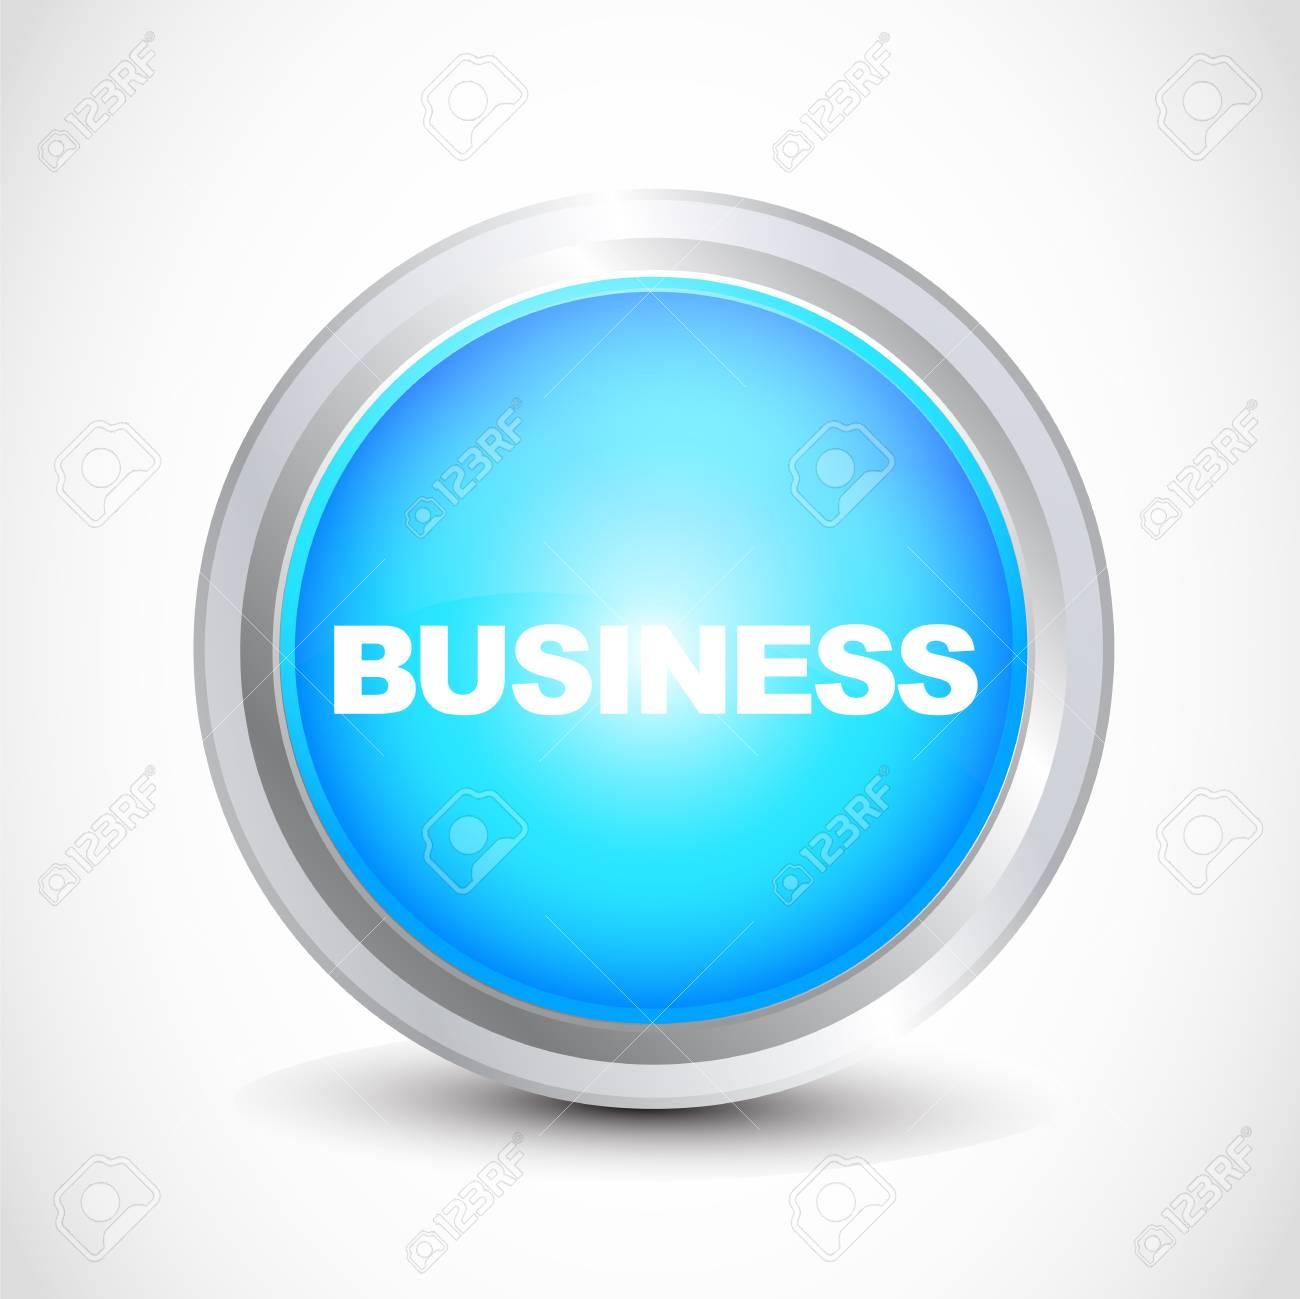 business glossy button Stock Vector - 12585712